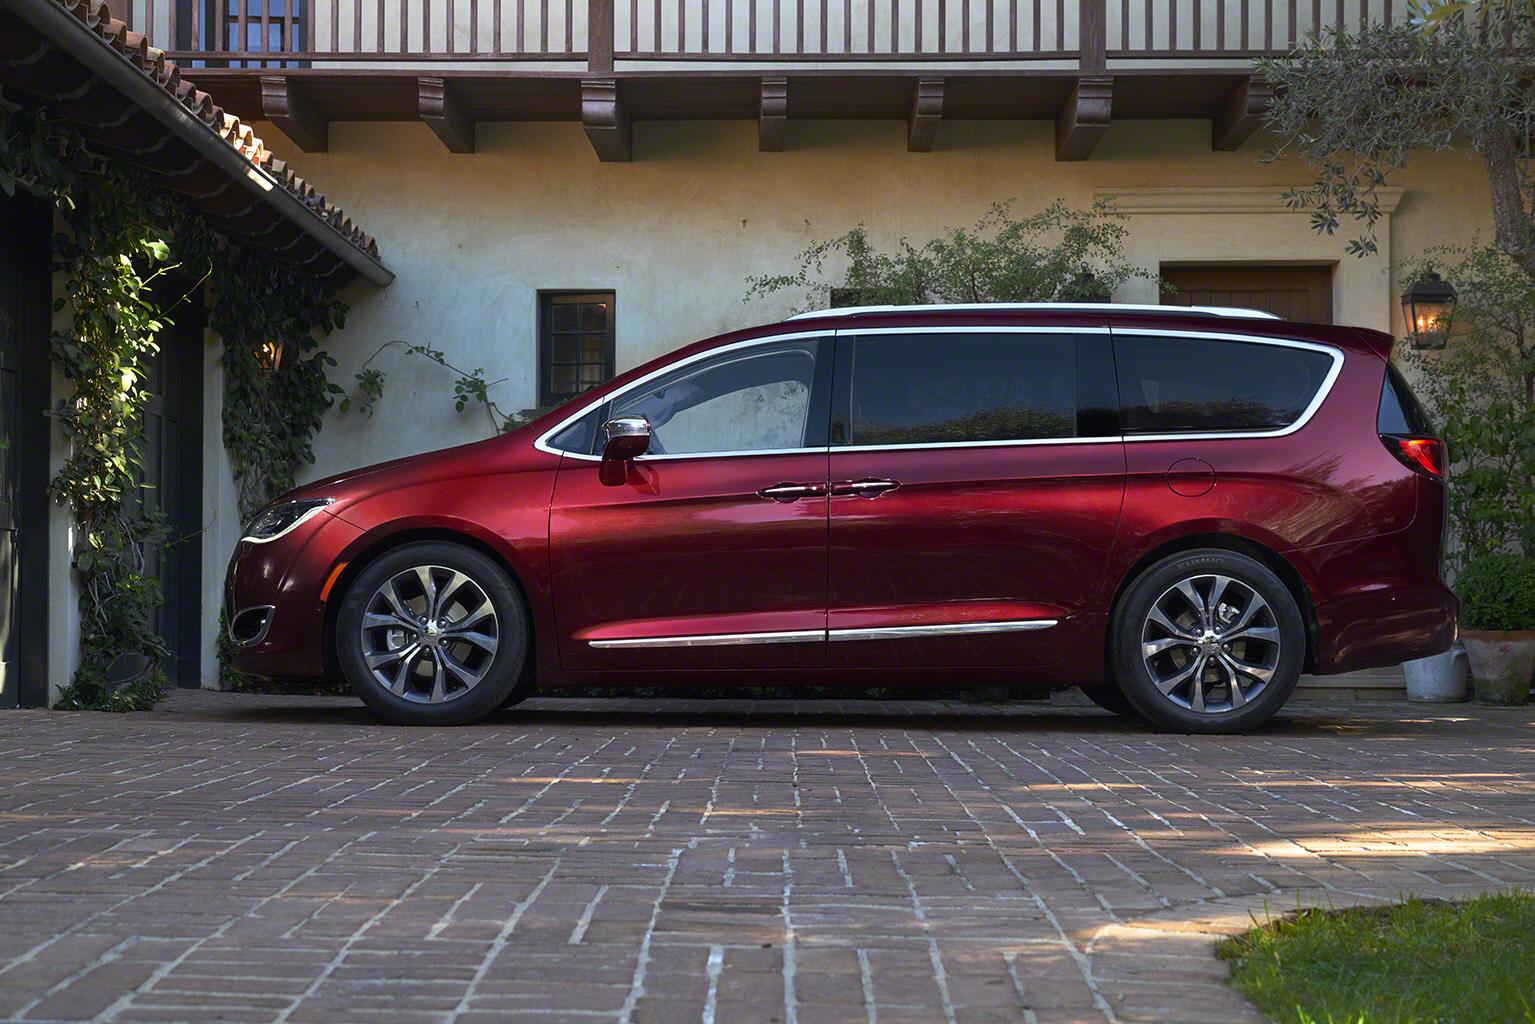 Dealer Daily Lexus >> 2017 Chrysler Pacifica (Town & Country replacement) revealed - ClubLexus - Lexus Forum Discussion